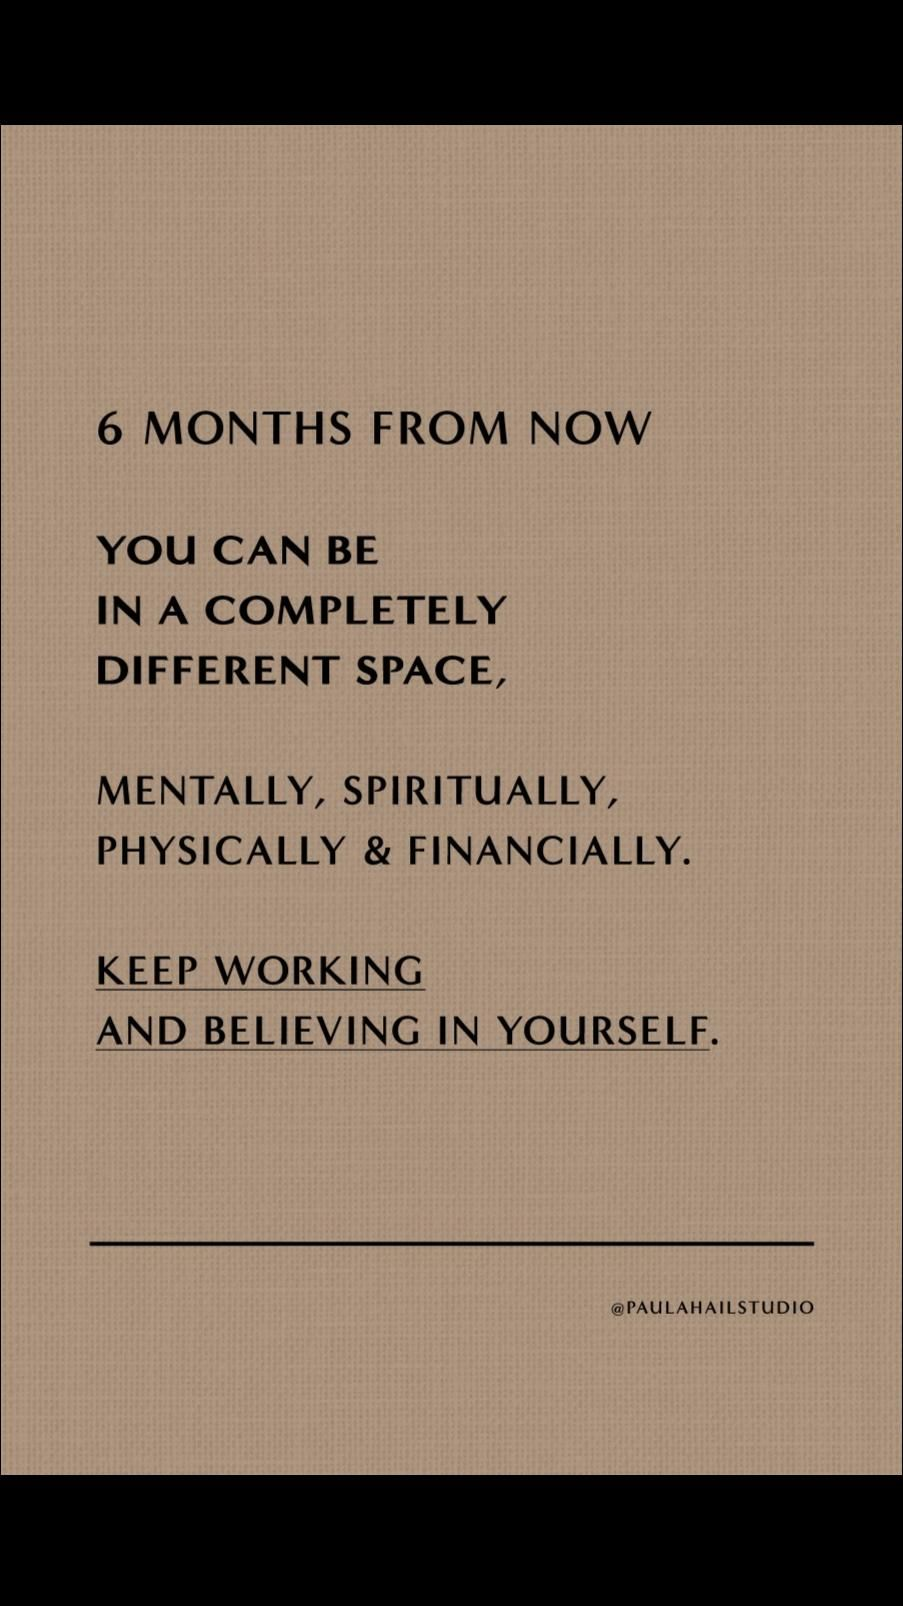 Pin it ⊶ 6 months from now you can be in a different space ⊶ Inspirational quotes & affirmations